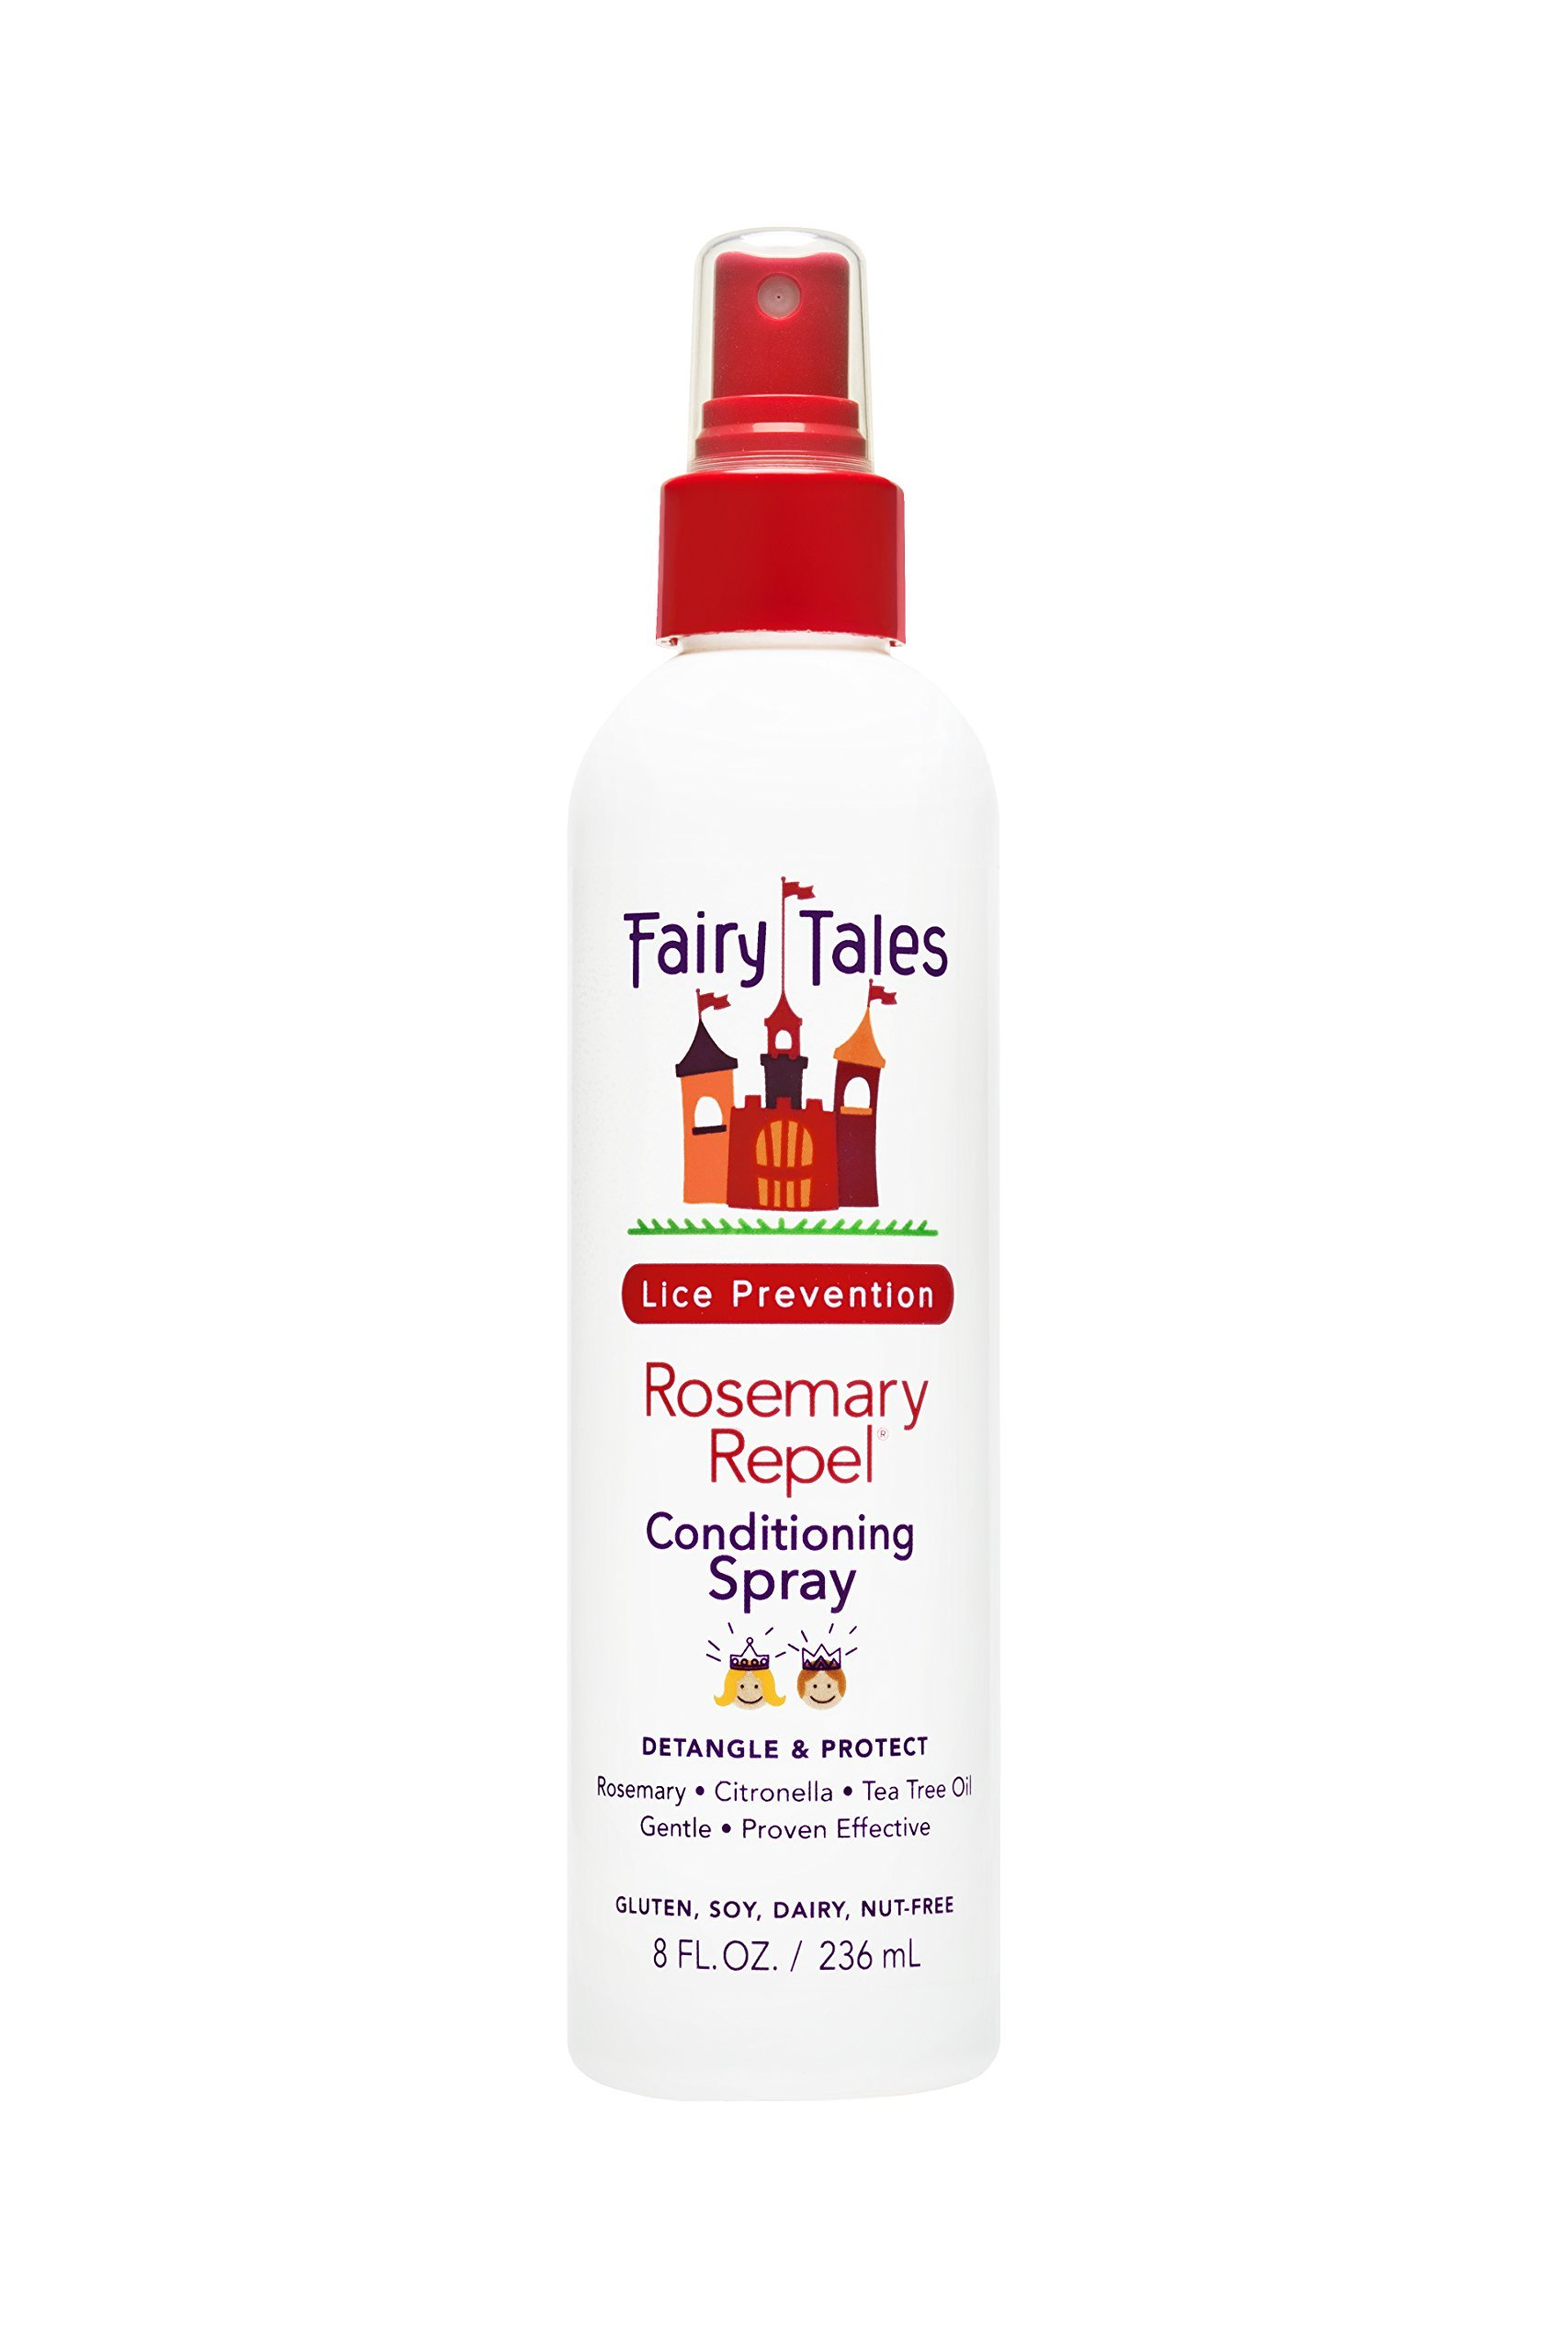 Fairy Tales Rosemary Repel Daily Kid Conditioning Spray for Lice Prevention - Non-Toxic - 8 oz